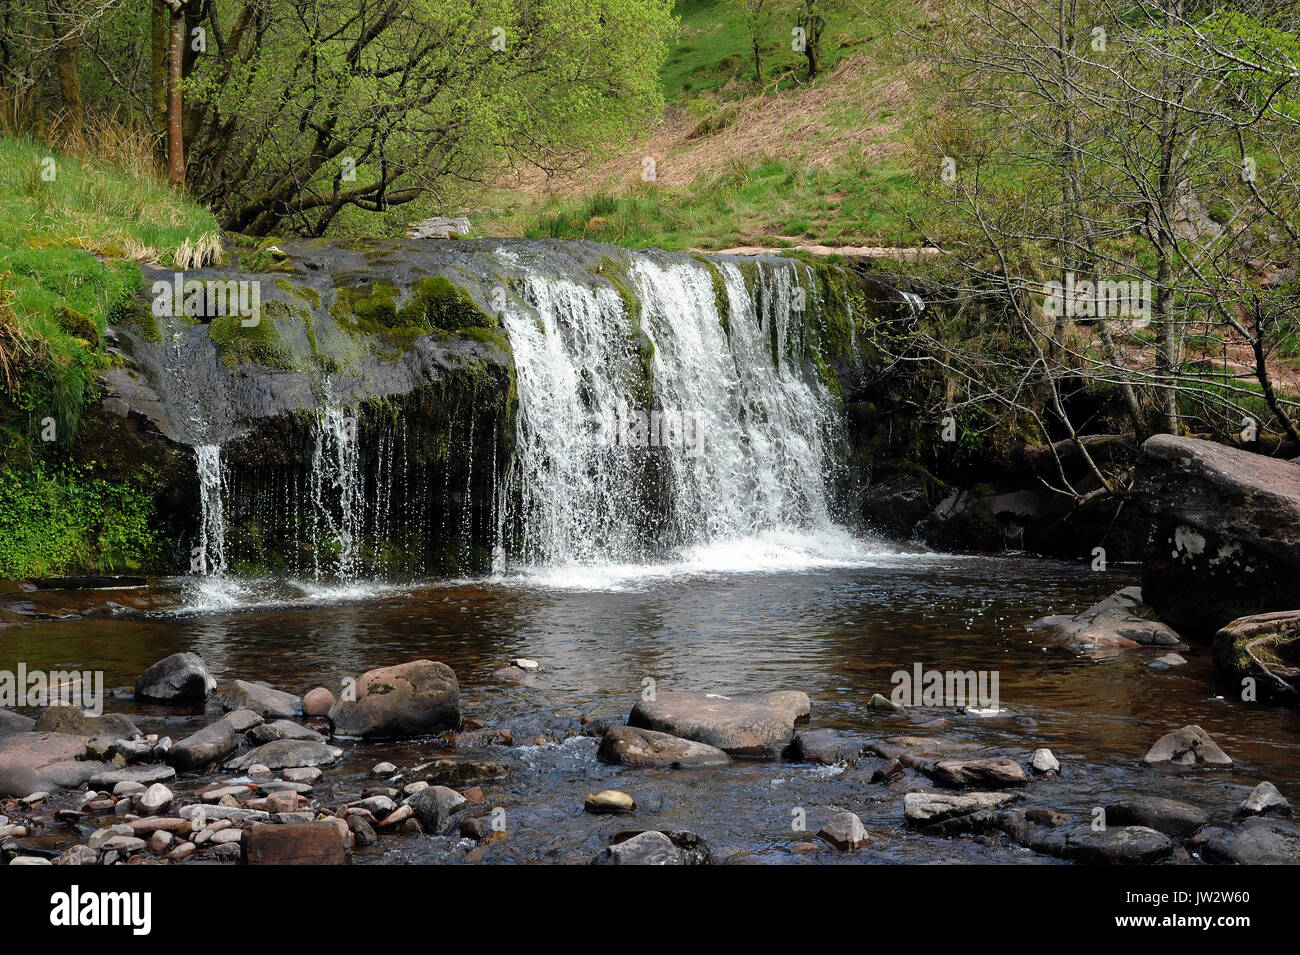 The upper of the two small waterfalls on the Afon Caerfanell near its confluence with the Nant Bwrefwr. Afon Caerfanell. - Stock Image